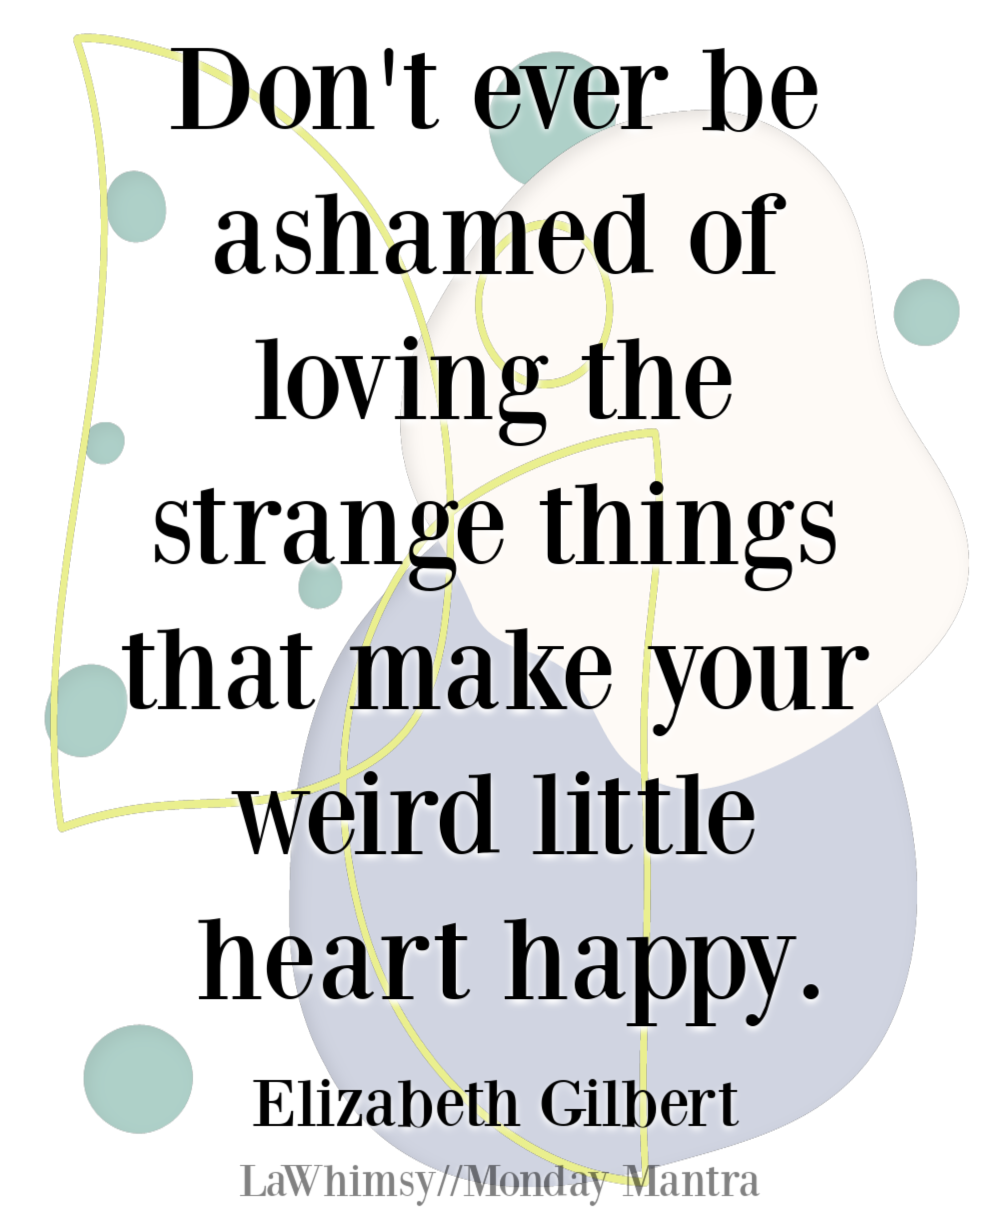 Don't ever be ashamed of loving the strange things that make your weird little heart happy Elizabeth Gilbert quote Monday Mantra 278 via LaWhimsy